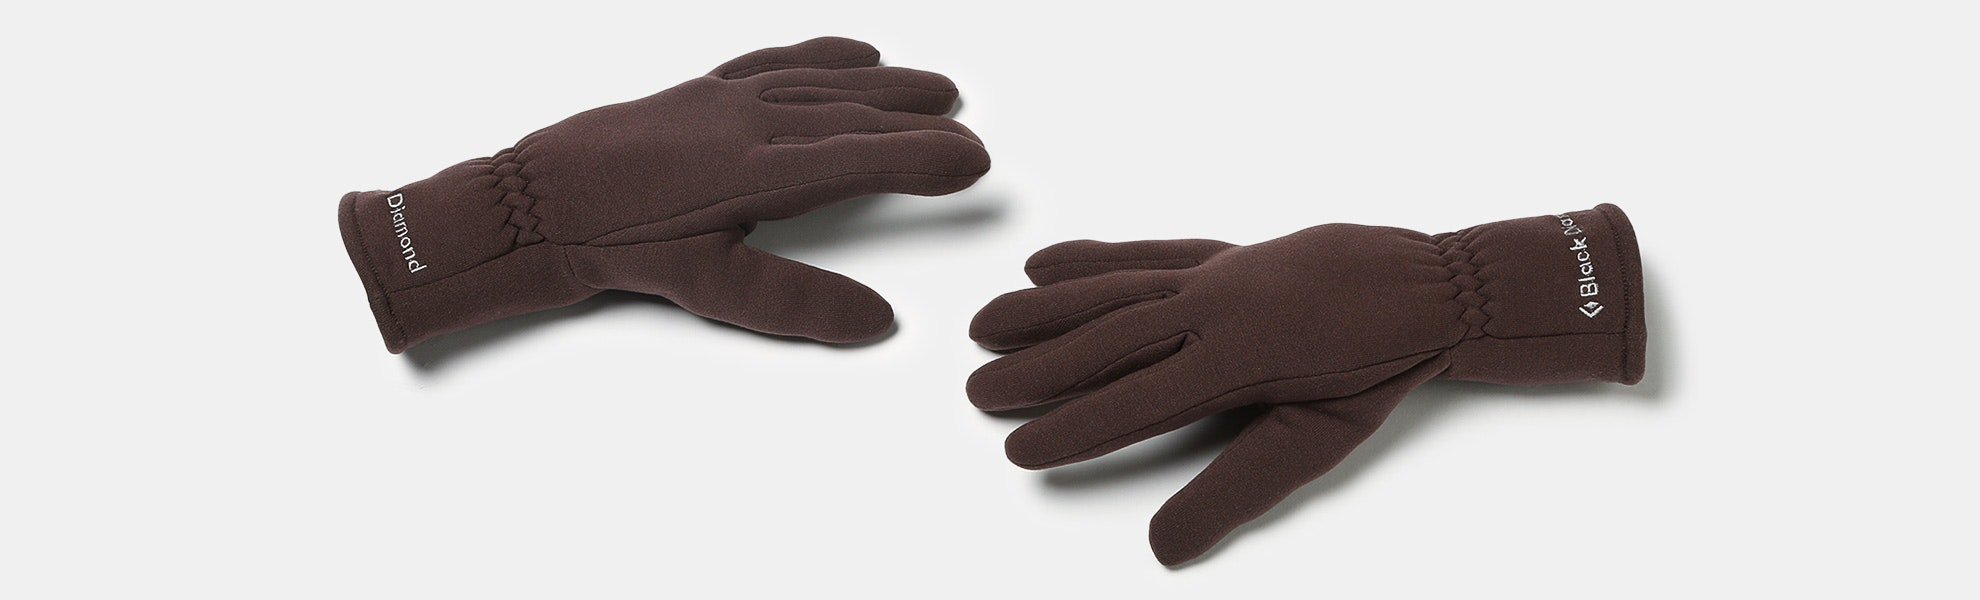 Black Diamond Fleece Gloves – Massdrop Exclusive